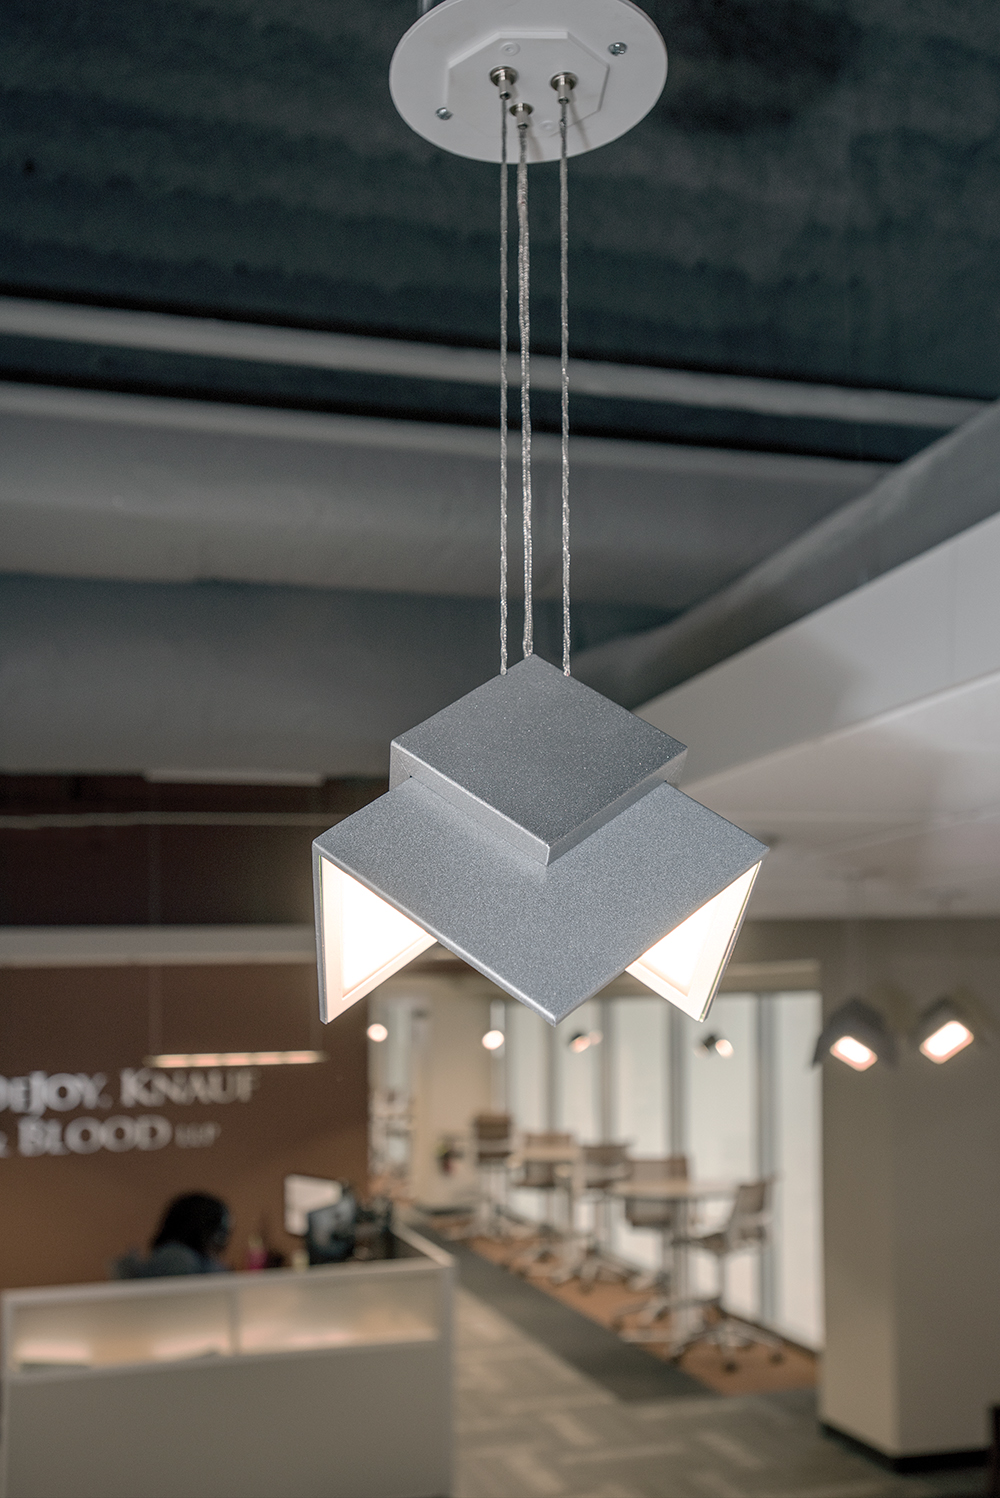 Petal OLED Pendants Are Eye Catching Office Lighting Fixtures, Seen Here  Above A Workplace ...